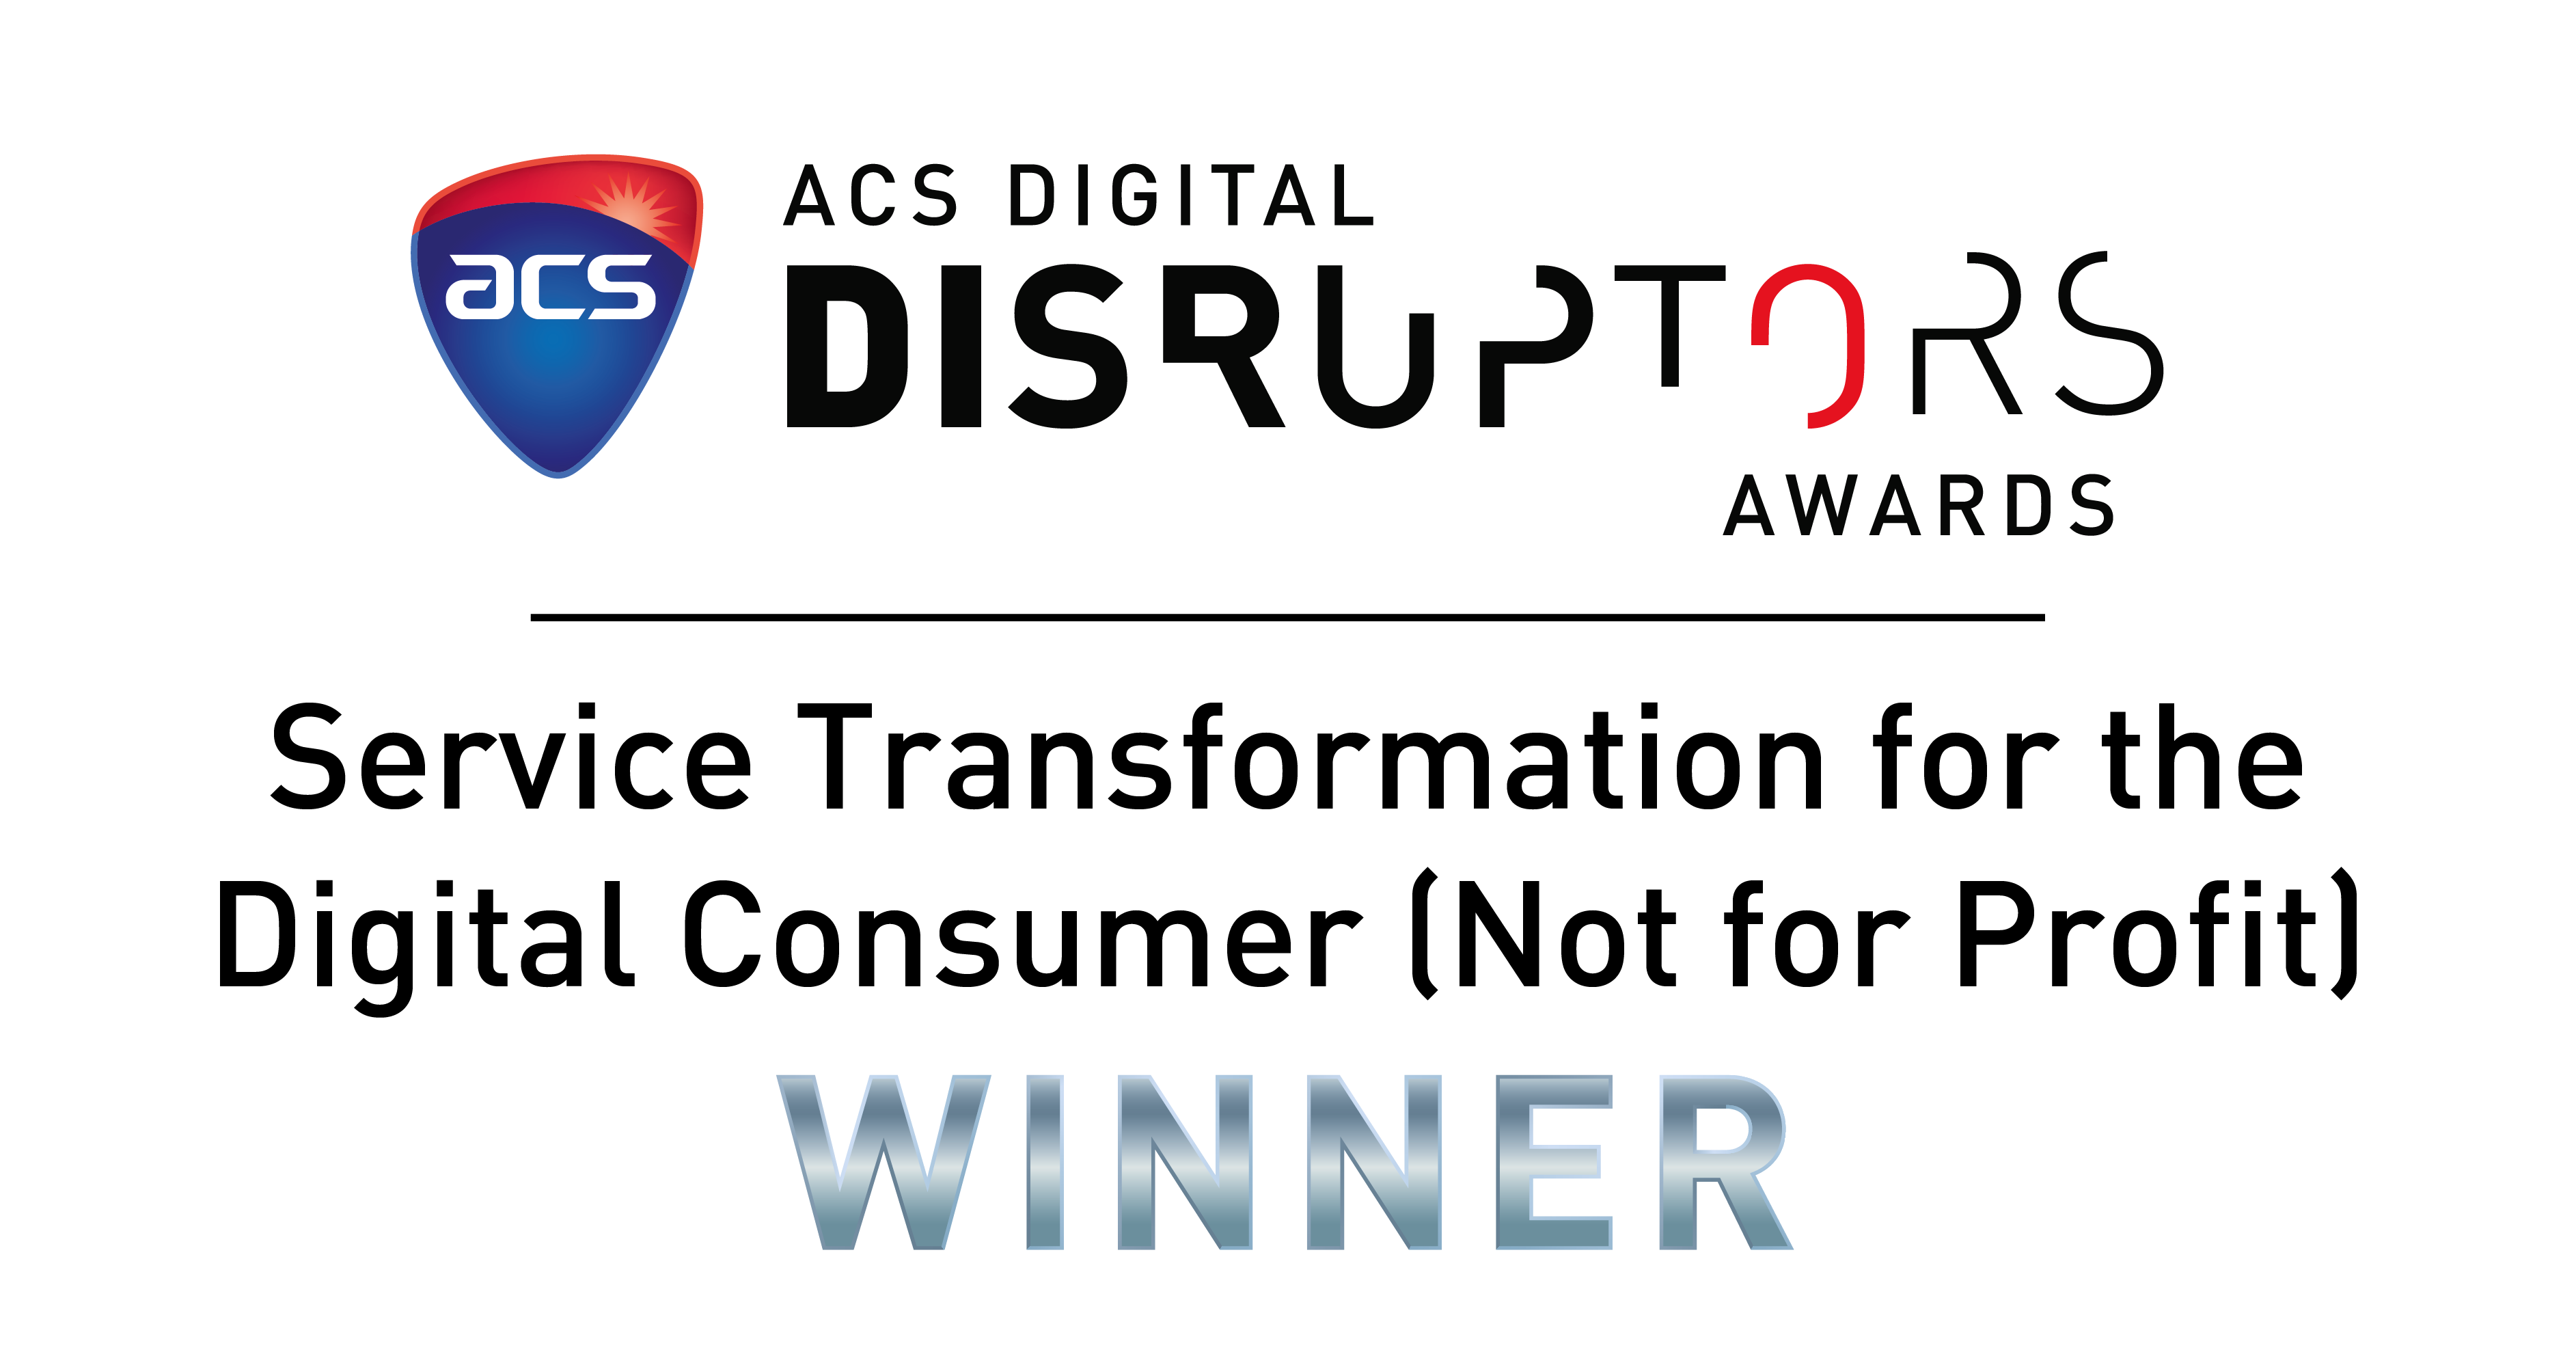 Winners! 2018 National ACS Digital Disruptor Award case study